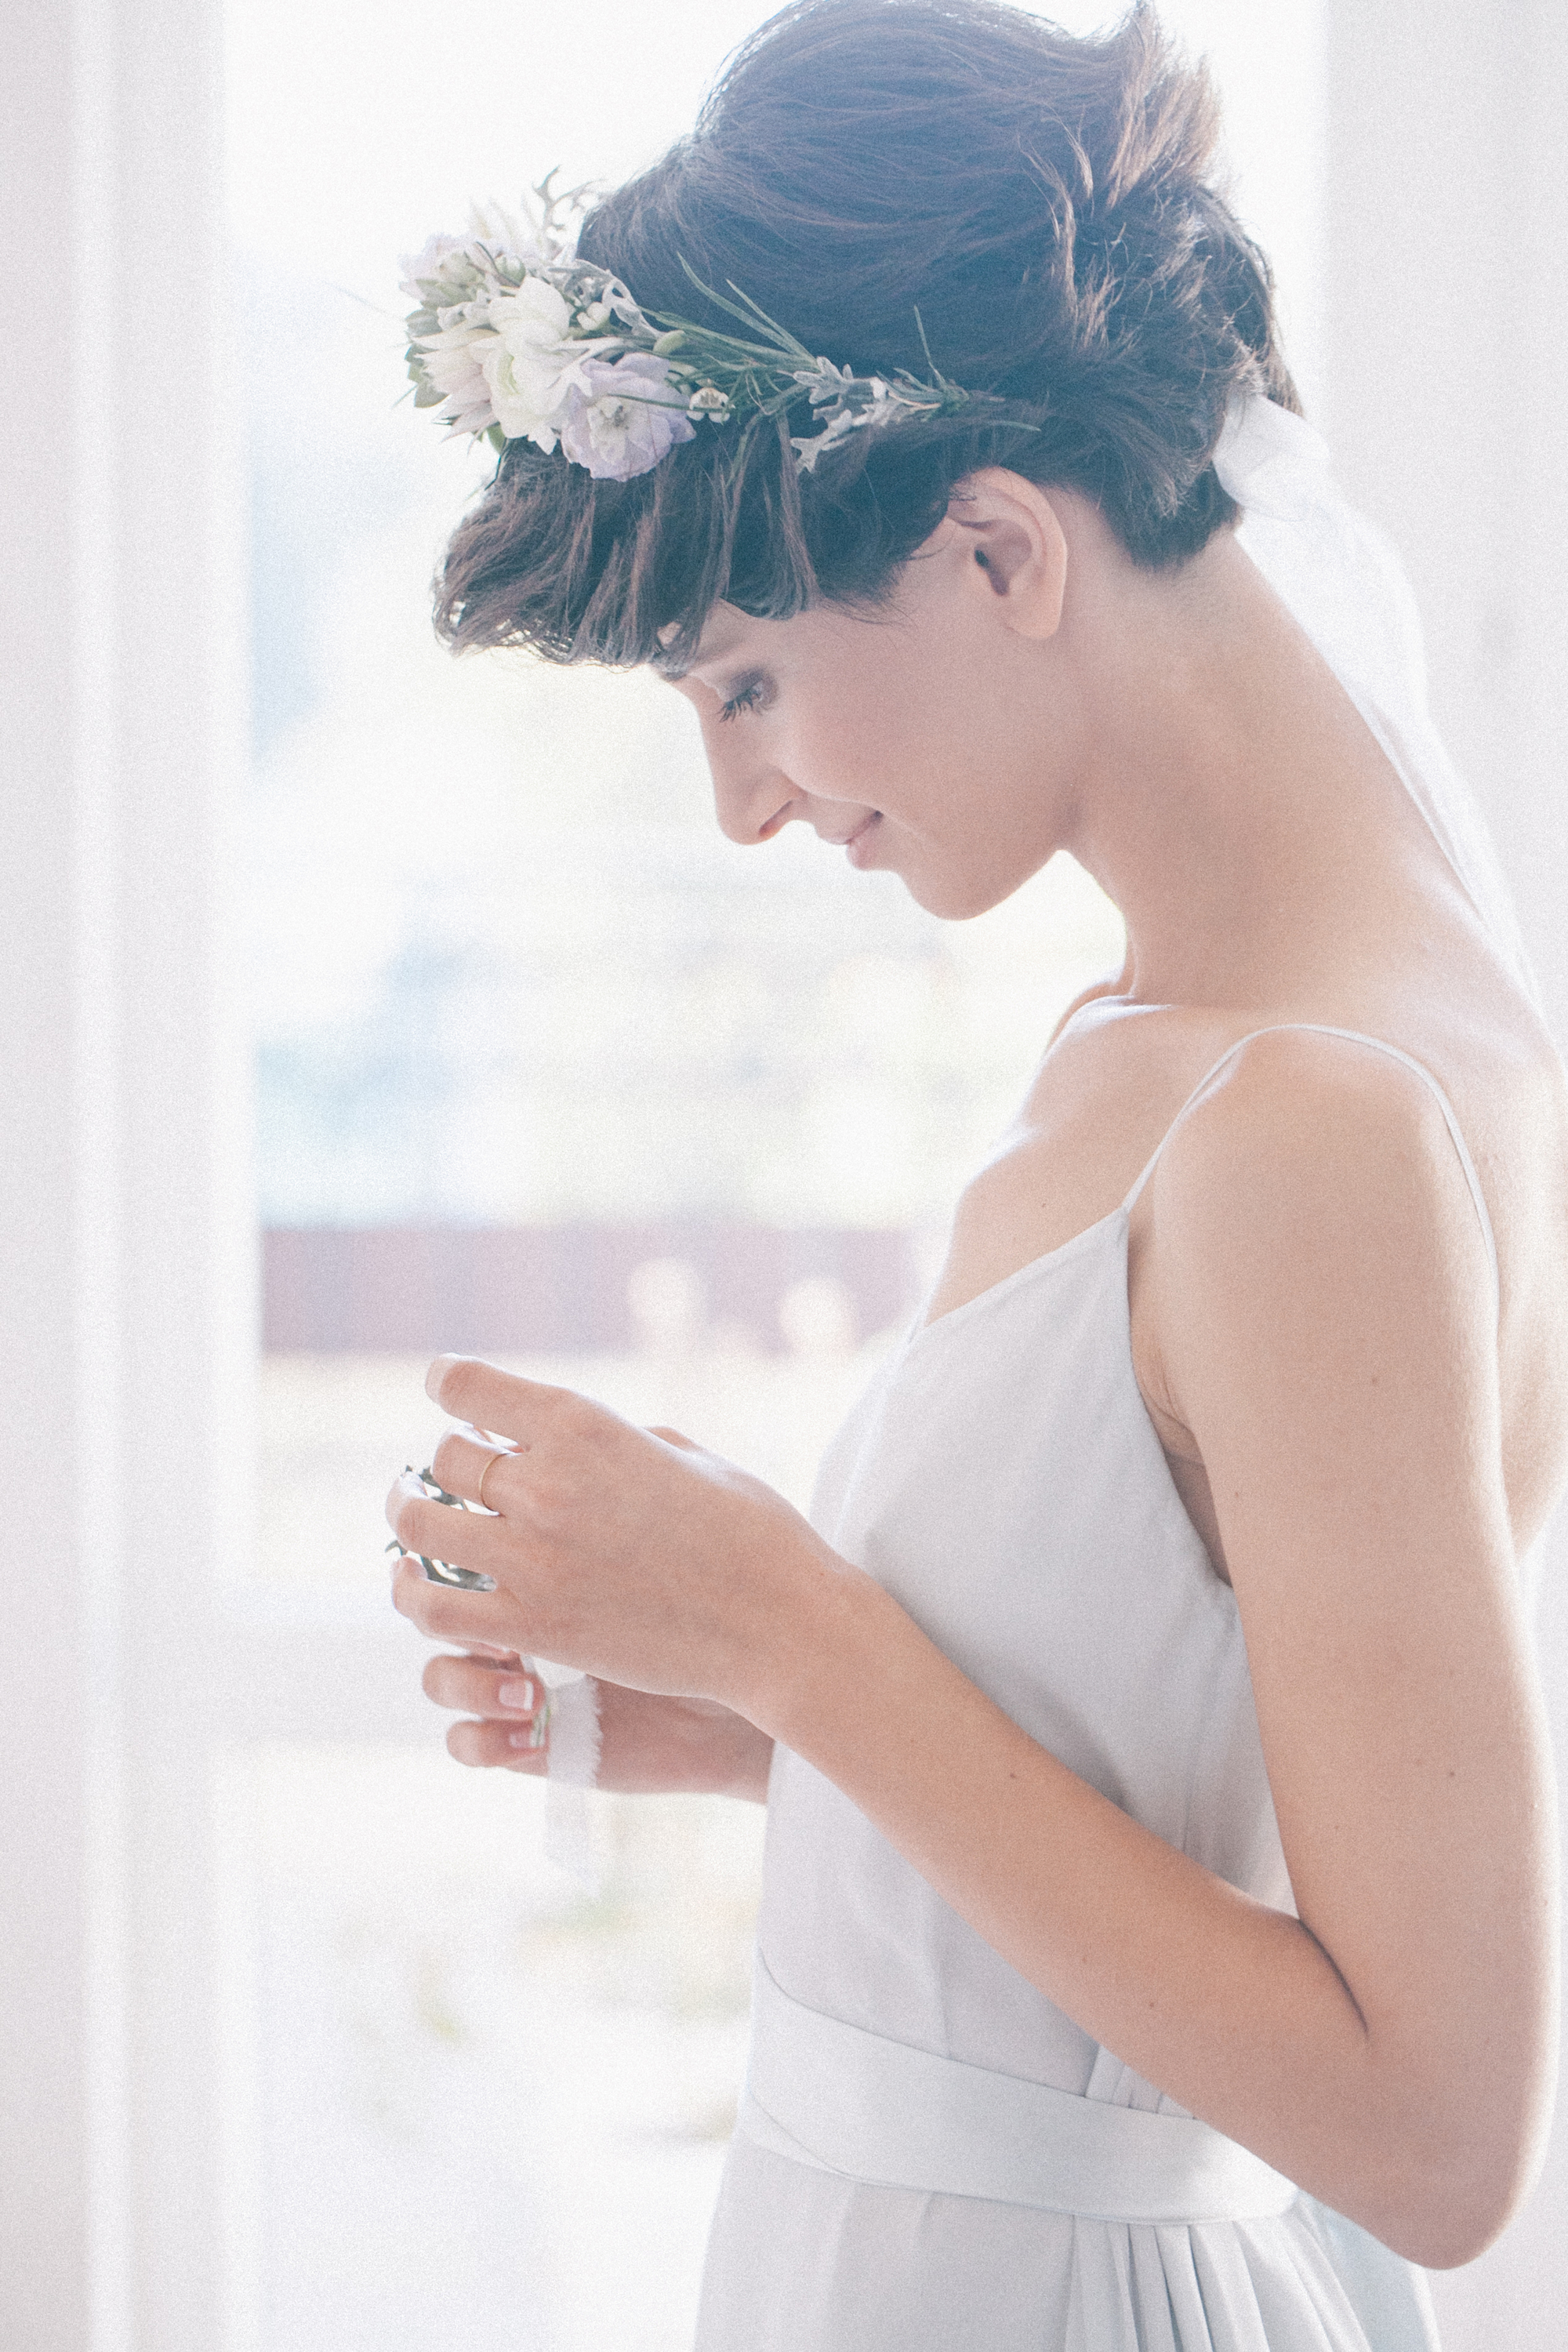 If you have short hair, it can be hard to style it for your wedding. Try adding a flower crown to your look. It will make you feel like a princess.